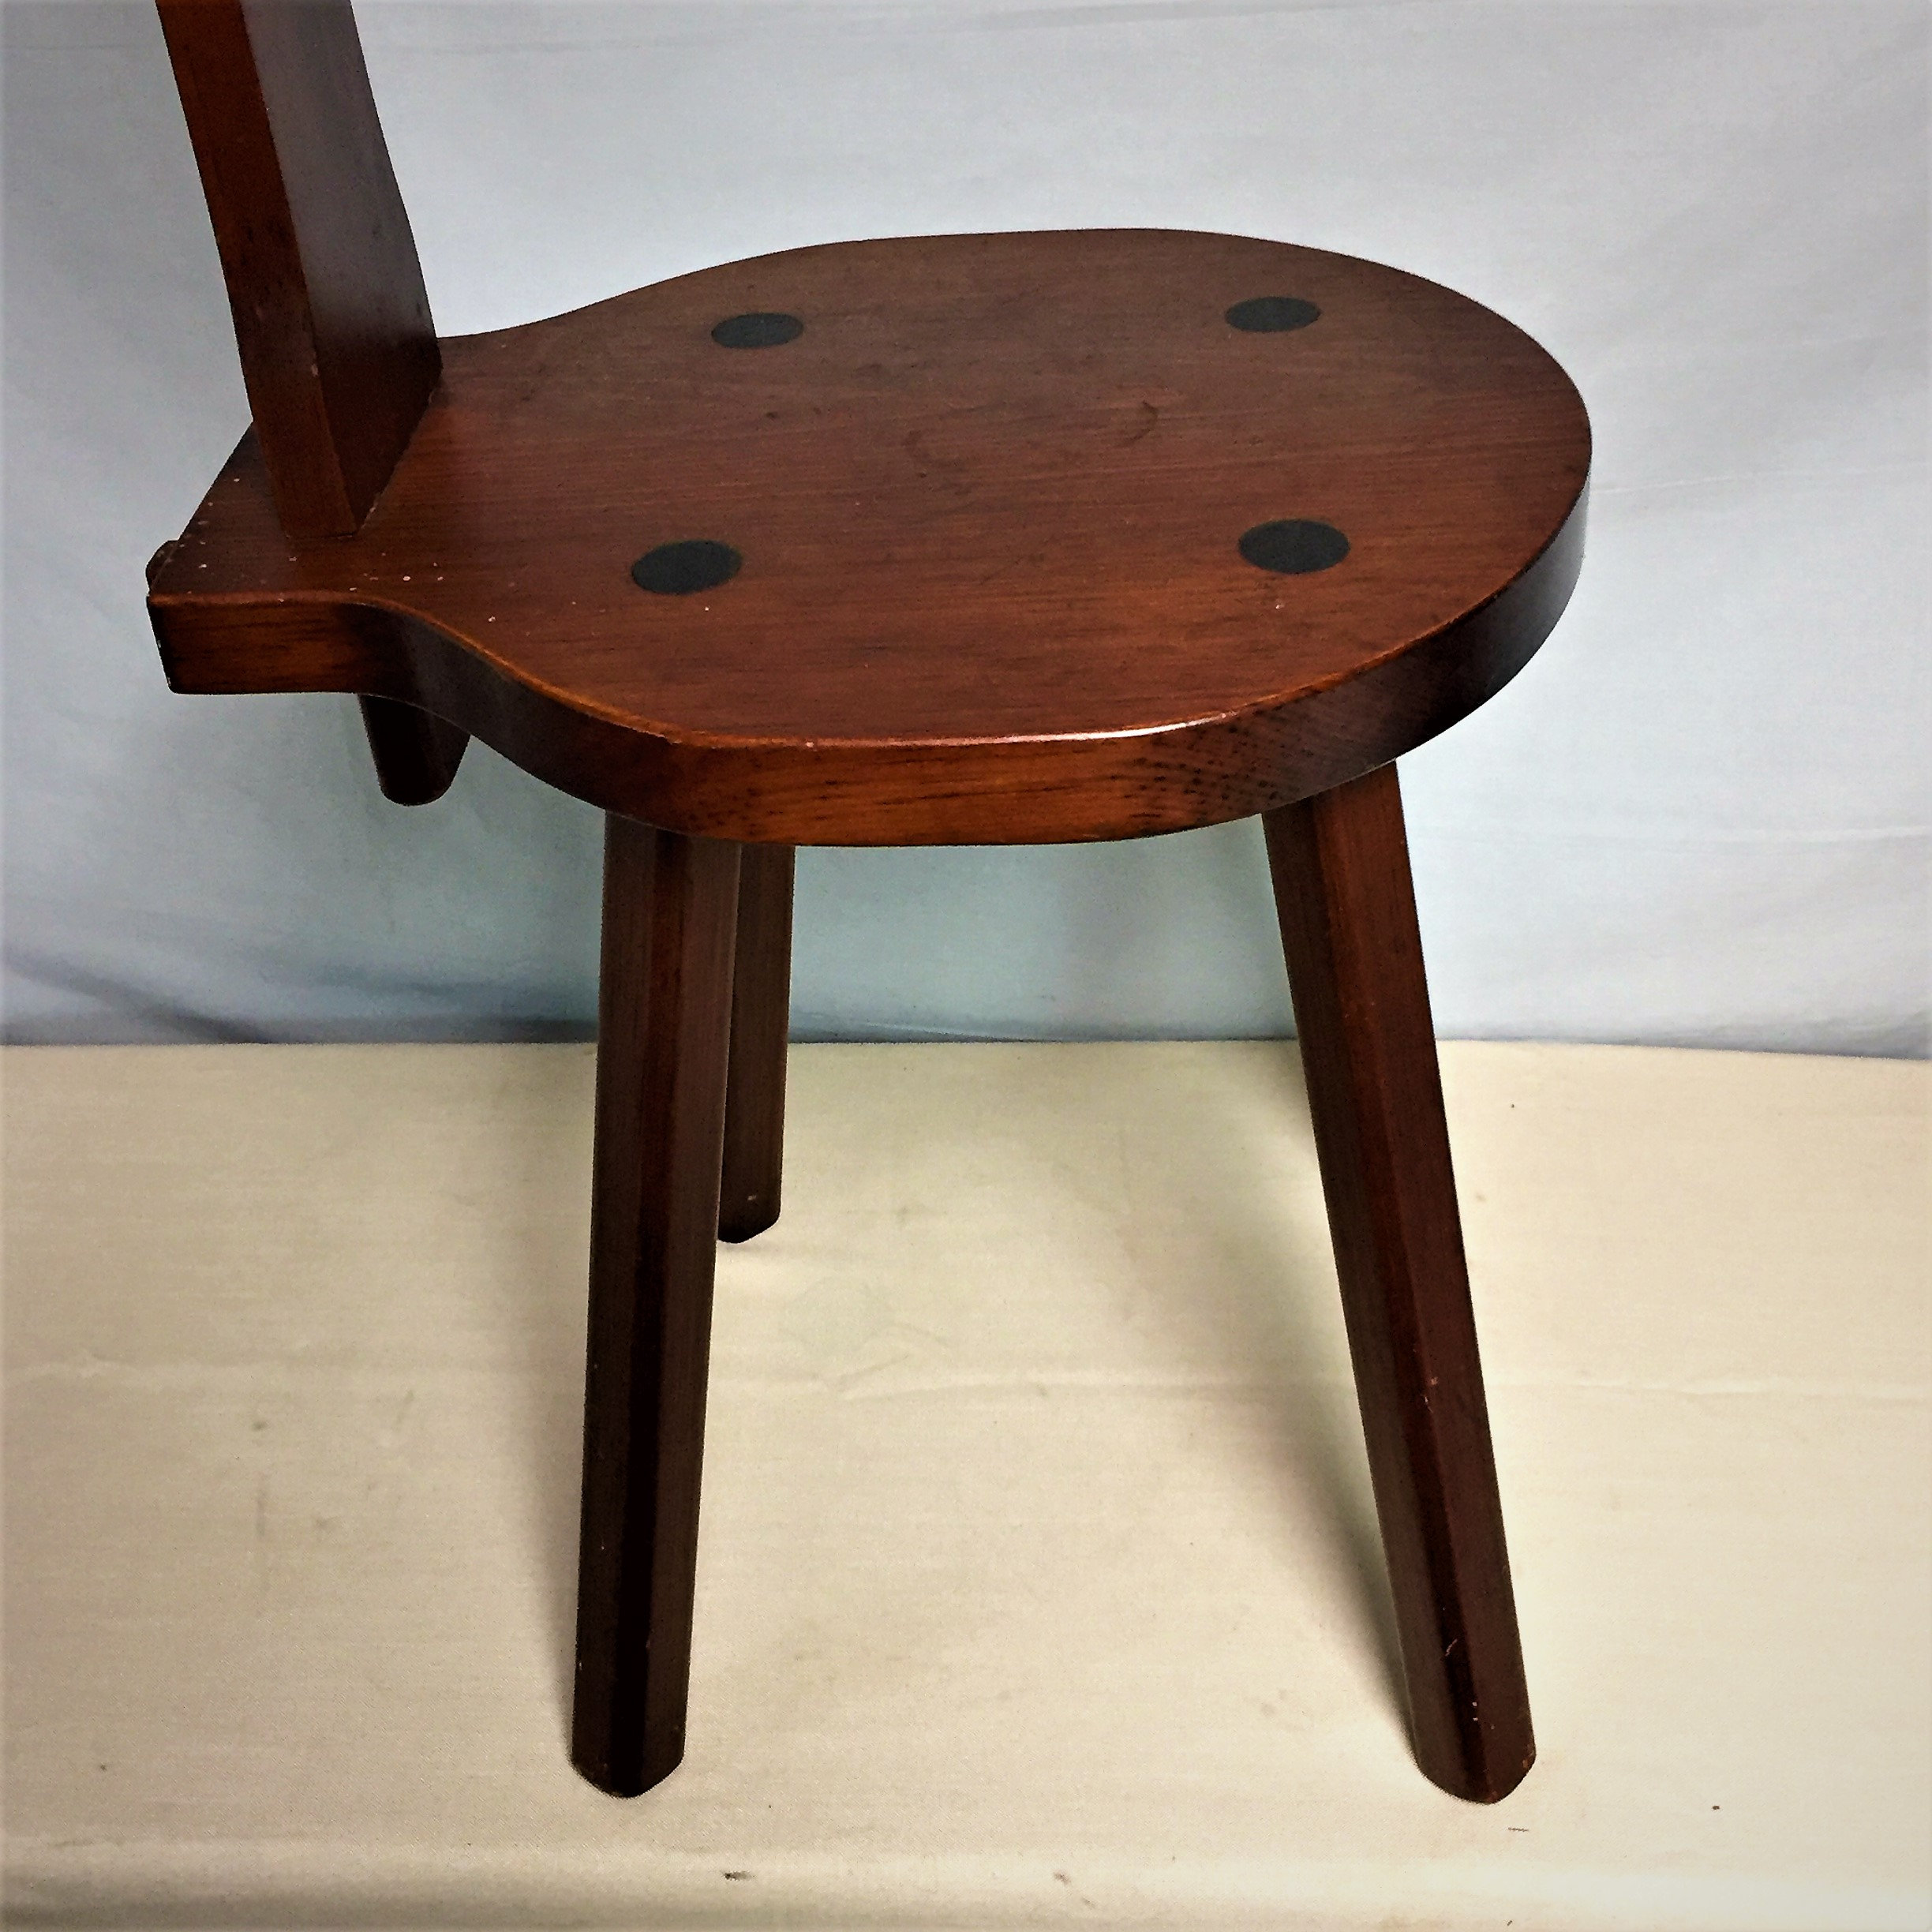 Astounding Solid Wood Welsh Spinning Chair Folk Art Spinning Stool Inzonedesignstudio Interior Chair Design Inzonedesignstudiocom